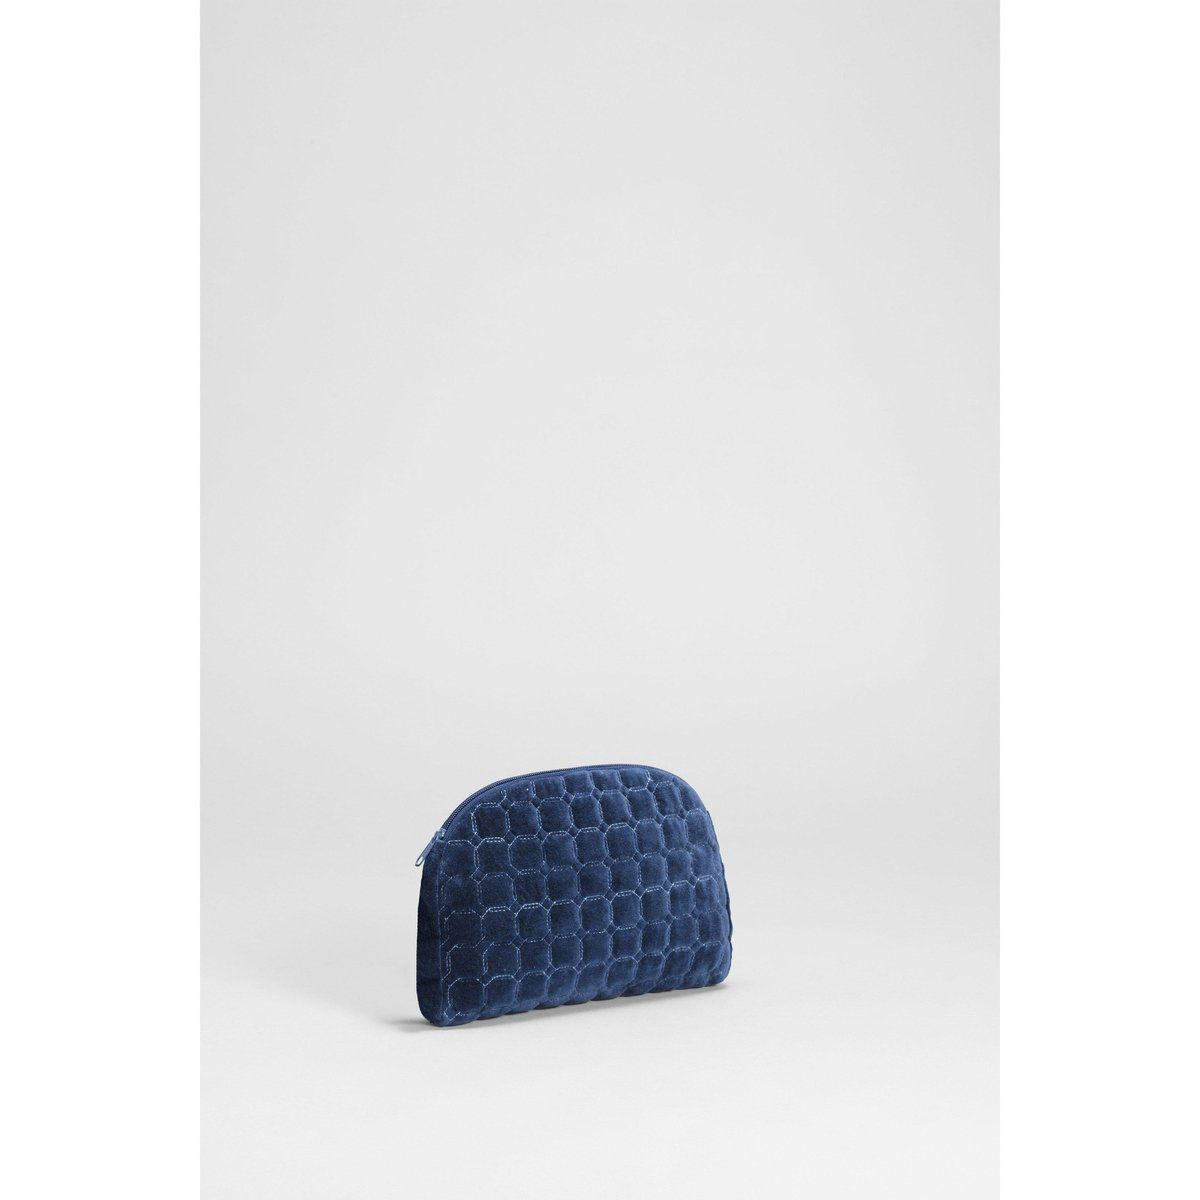 FREE SHIPPING - The Inka Pouch by Elk